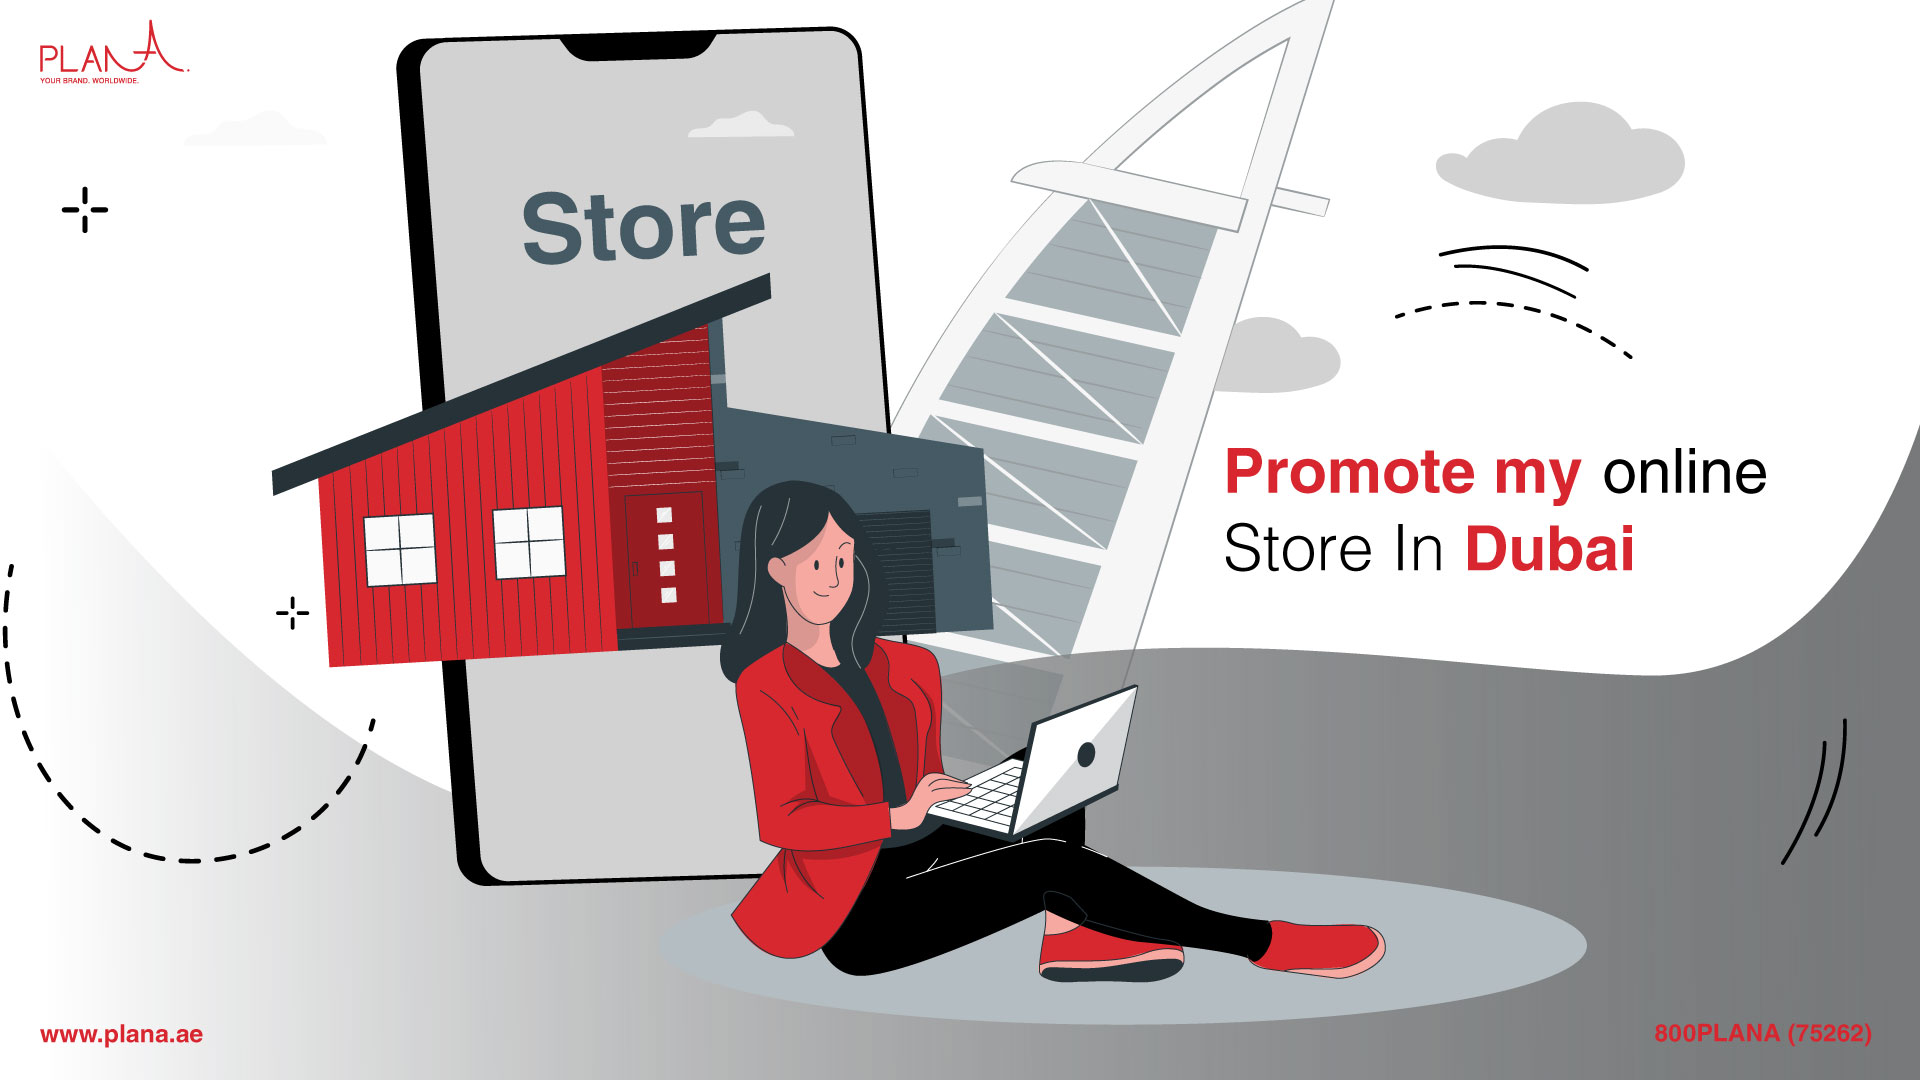 How to Promote My Online Store in Dubai?